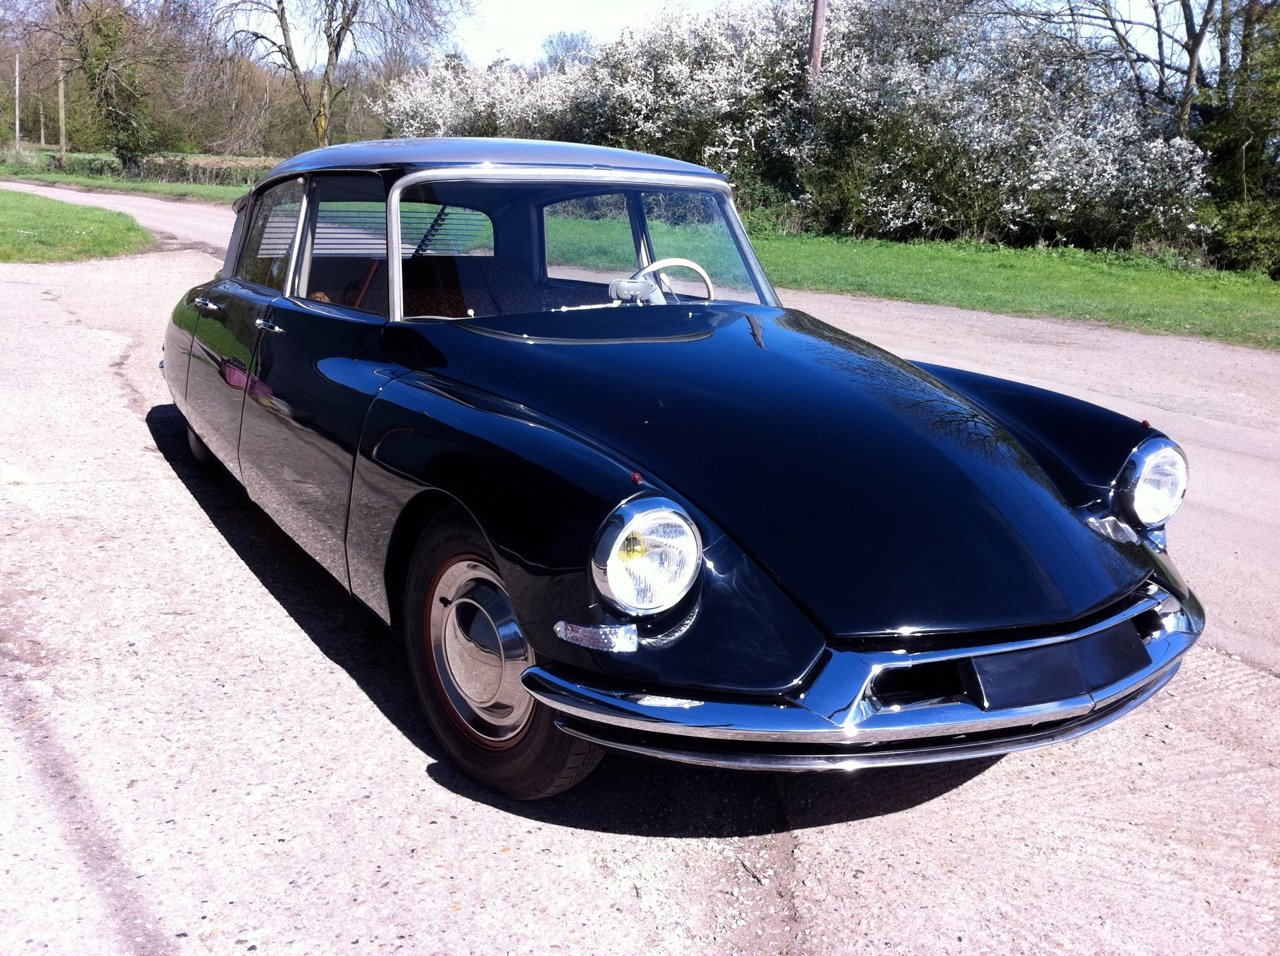 1958 - Rare concours Citroen DS 19. 59371km For Sale (picture 1 of 6)